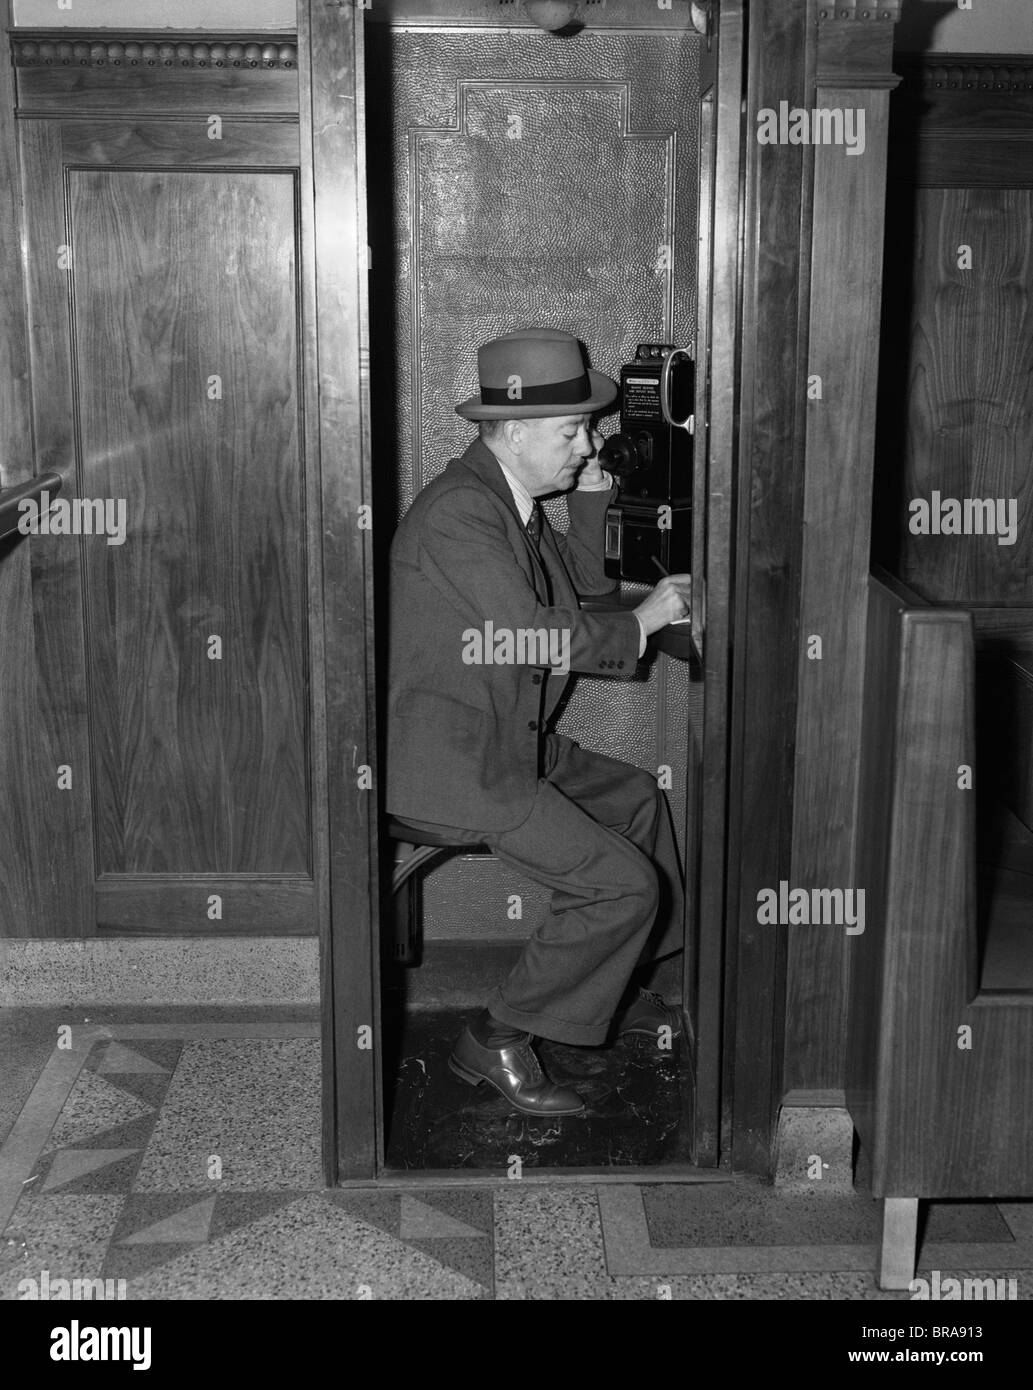 1940s MAN SITTING IN WOODEN TELEPHONE BOOTH SPEAKING INTO RECEIVER - Stock Image